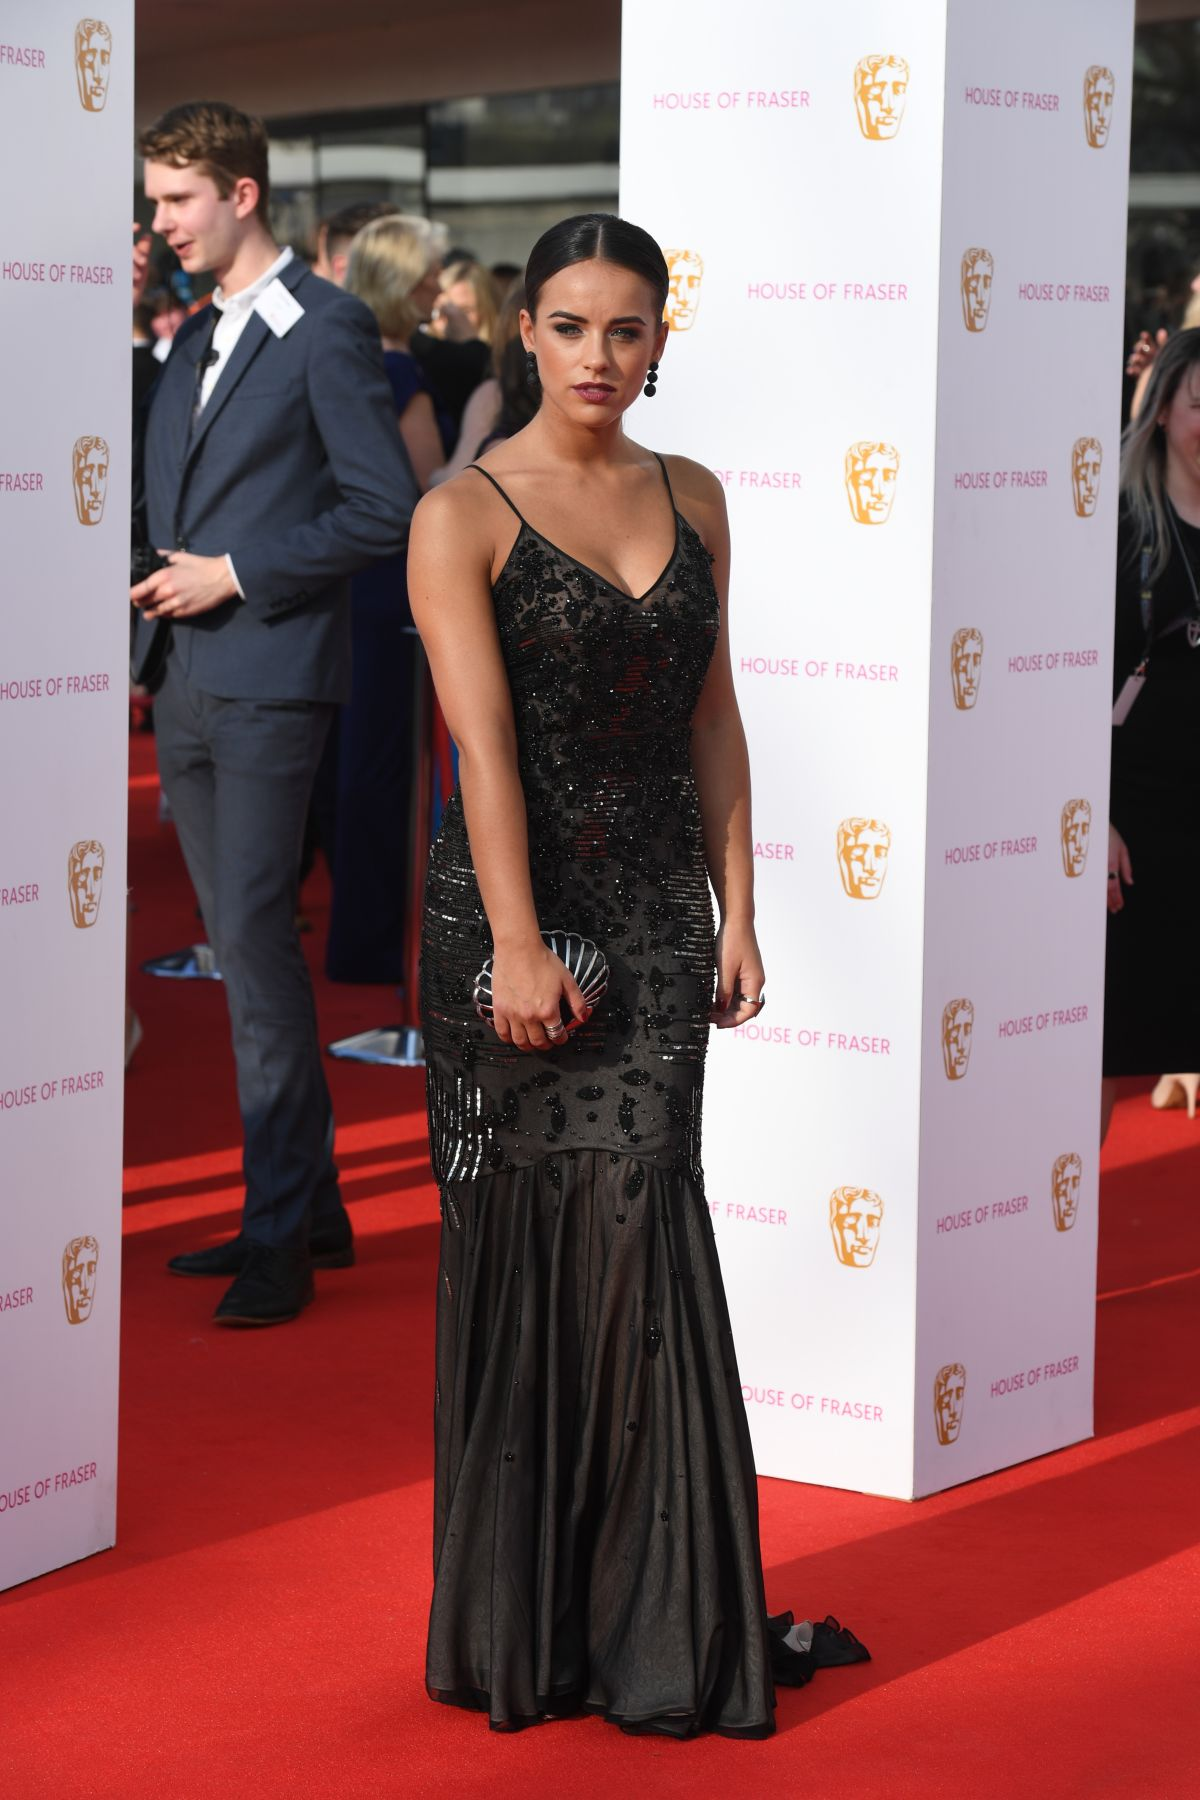 GEORGIA MAY FOOTE at House of Fraser British Academy Television Awards 05/08/2016